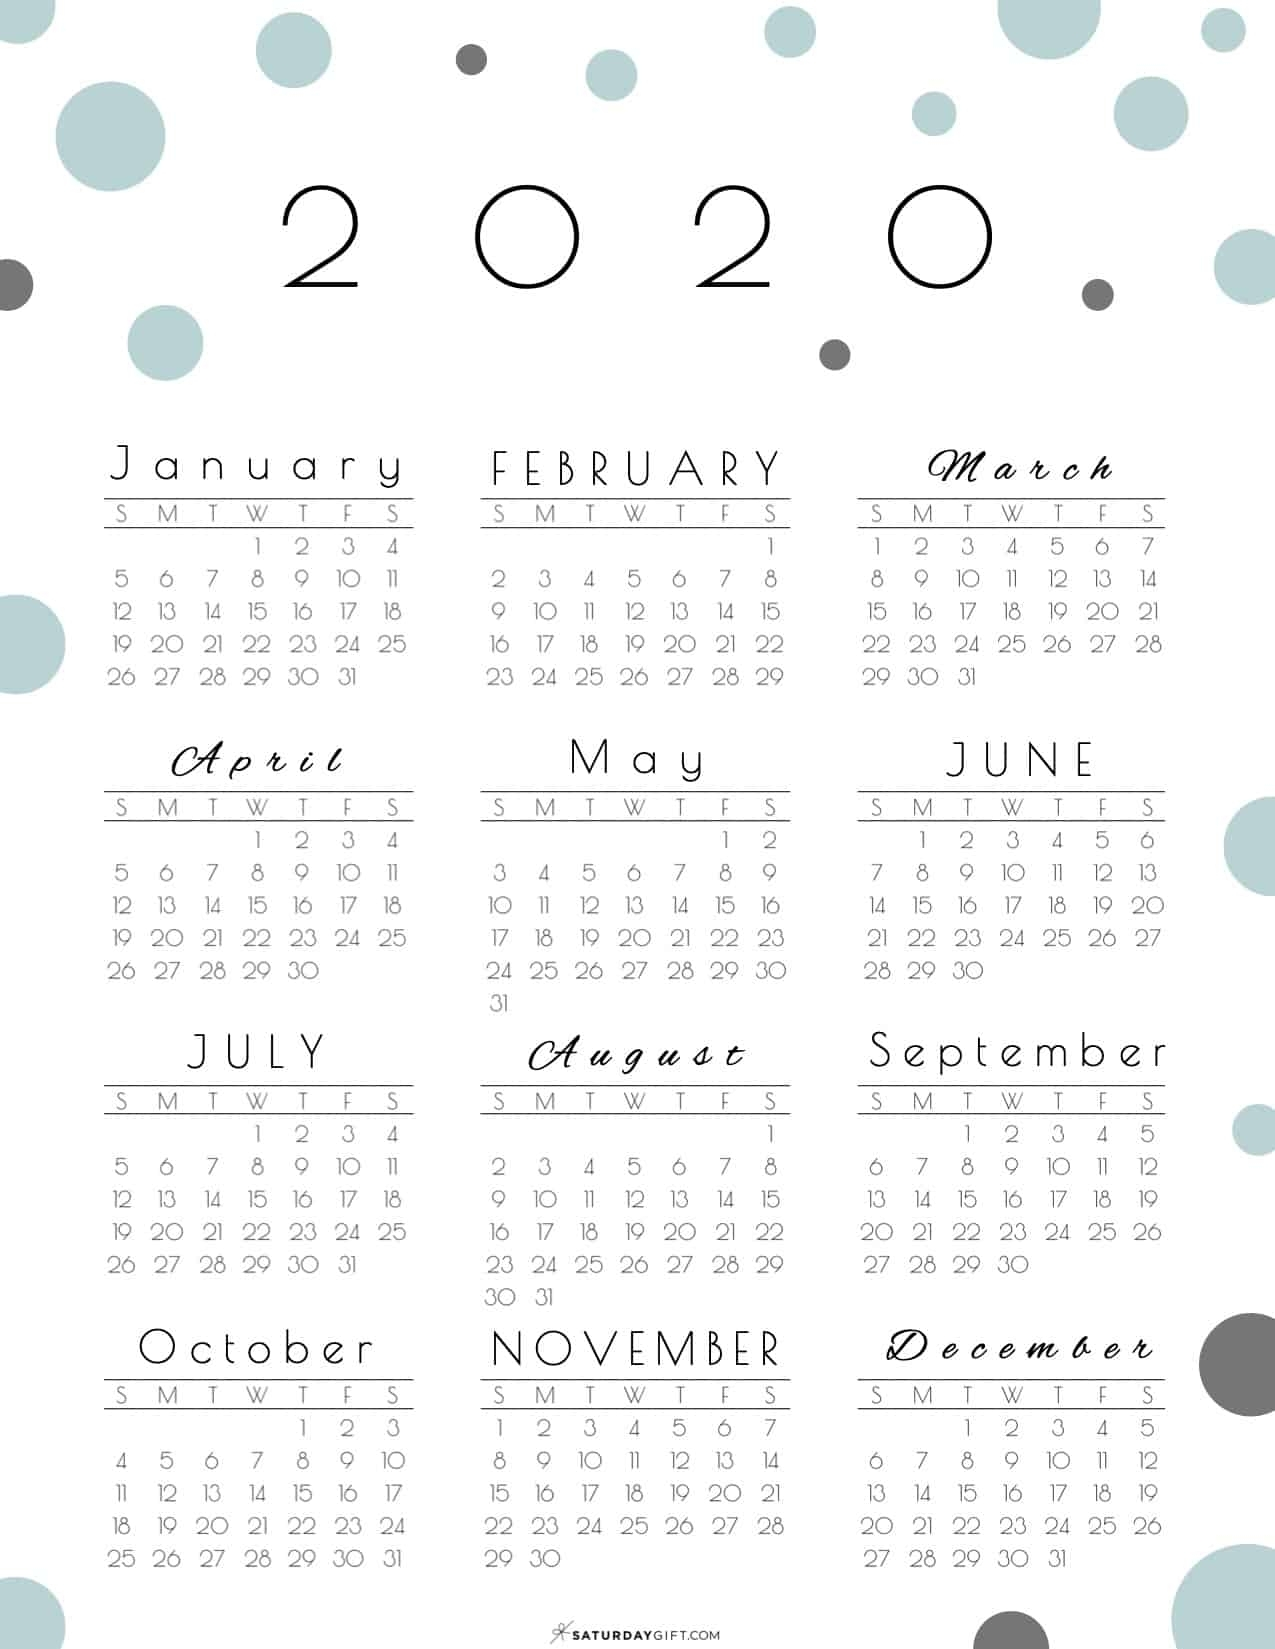 Year At A Glance Calendar 2020 - Pretty (And Free!) Printable throughout Year At A Glance 2020 Printable Calendar